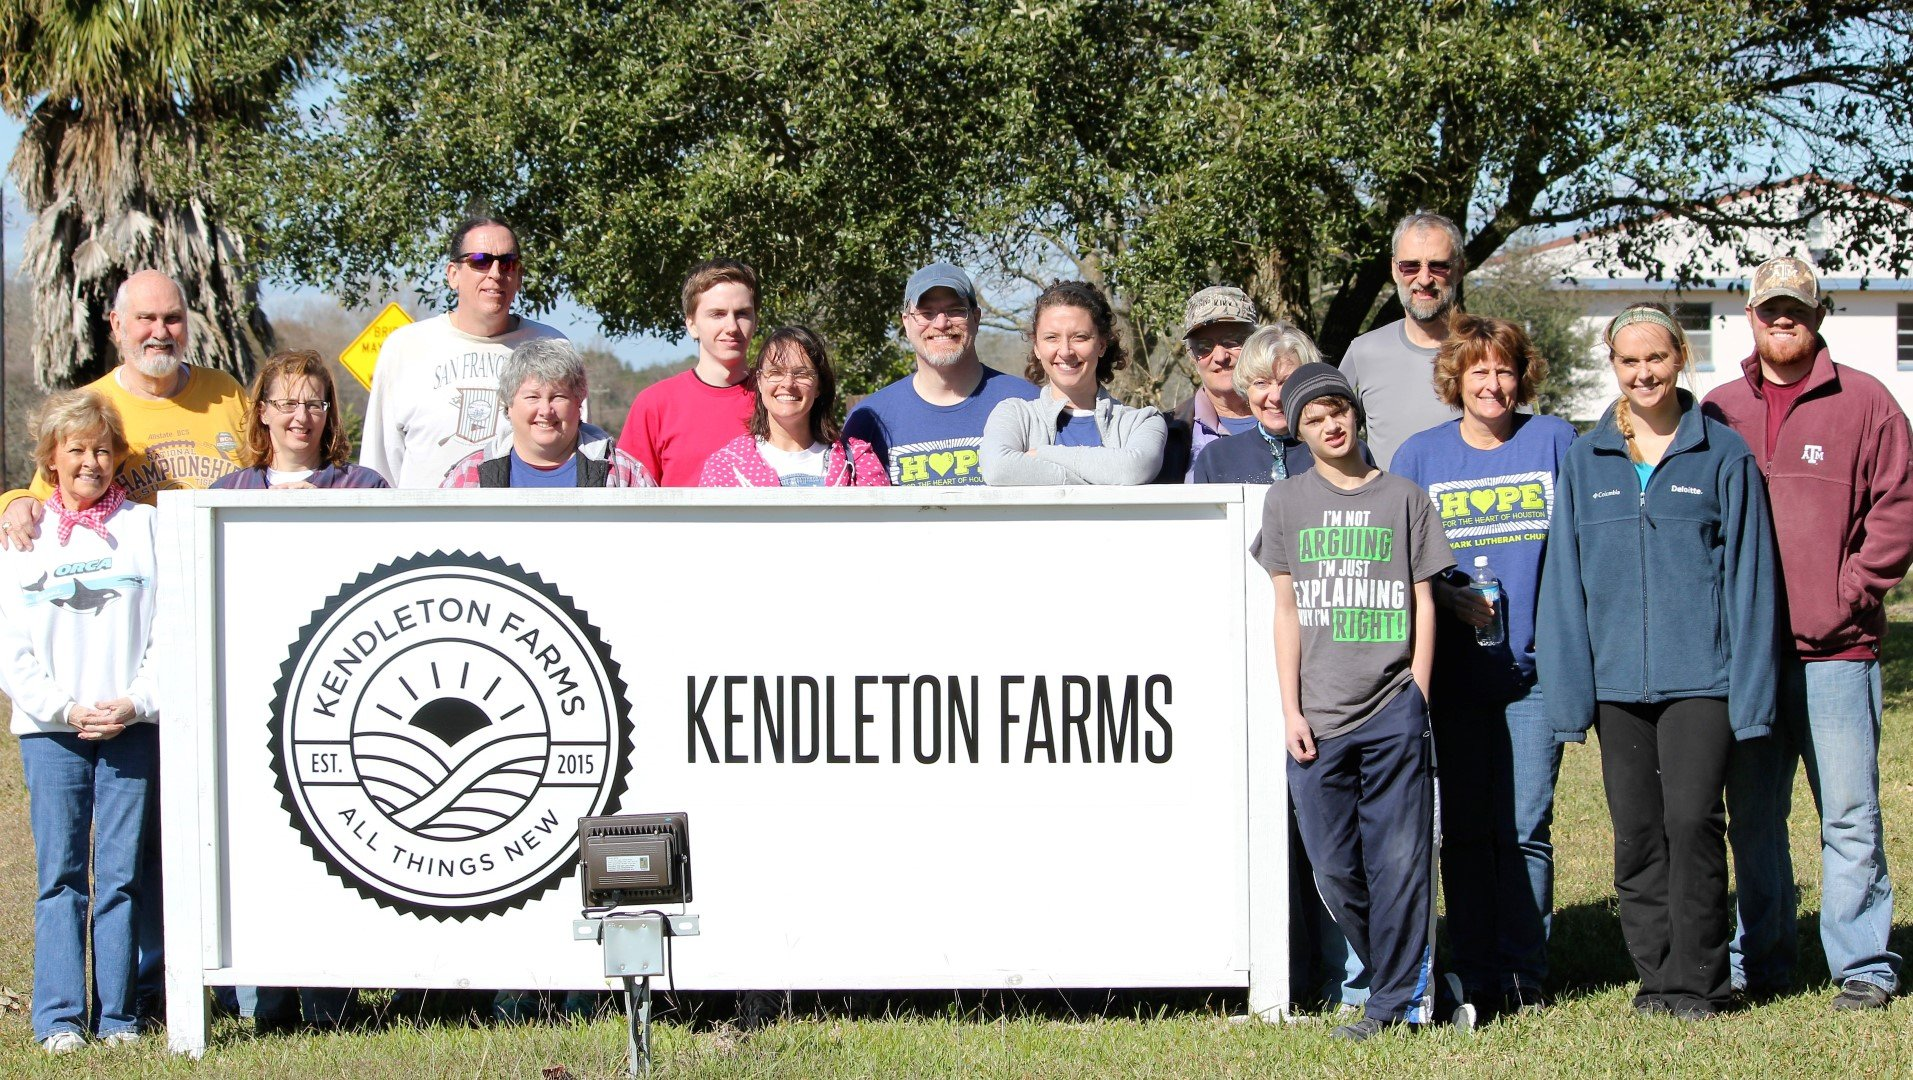 My Time at Kendleton Farms